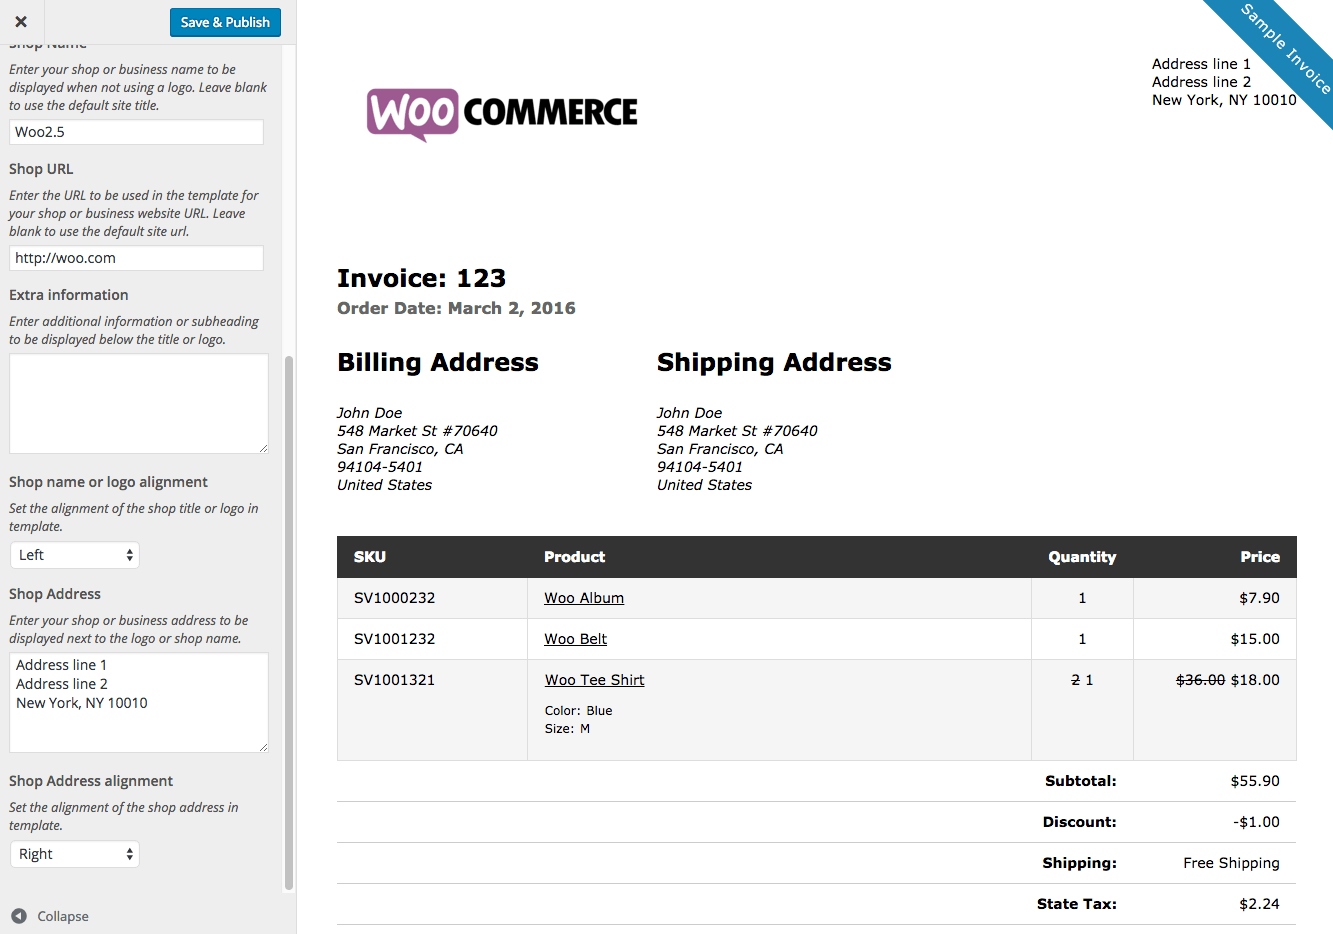 Imagerackus  Pretty Woocommerce Print Invoices Amp Packing Lists  Woocommerce Docs With Heavenly Woocommerce Print Invoices  Packing Lists Customizer With Adorable Receipts Format Also Official Receipt Meaning In Addition Receipt For Egg Salad And Acknowledgement Receipt For Payment As Well As Can I Get A Receipt Additionally Where To Find Receipt Number From Docswoocommercecom With Imagerackus  Heavenly Woocommerce Print Invoices Amp Packing Lists  Woocommerce Docs With Adorable Woocommerce Print Invoices  Packing Lists Customizer And Pretty Receipts Format Also Official Receipt Meaning In Addition Receipt For Egg Salad From Docswoocommercecom